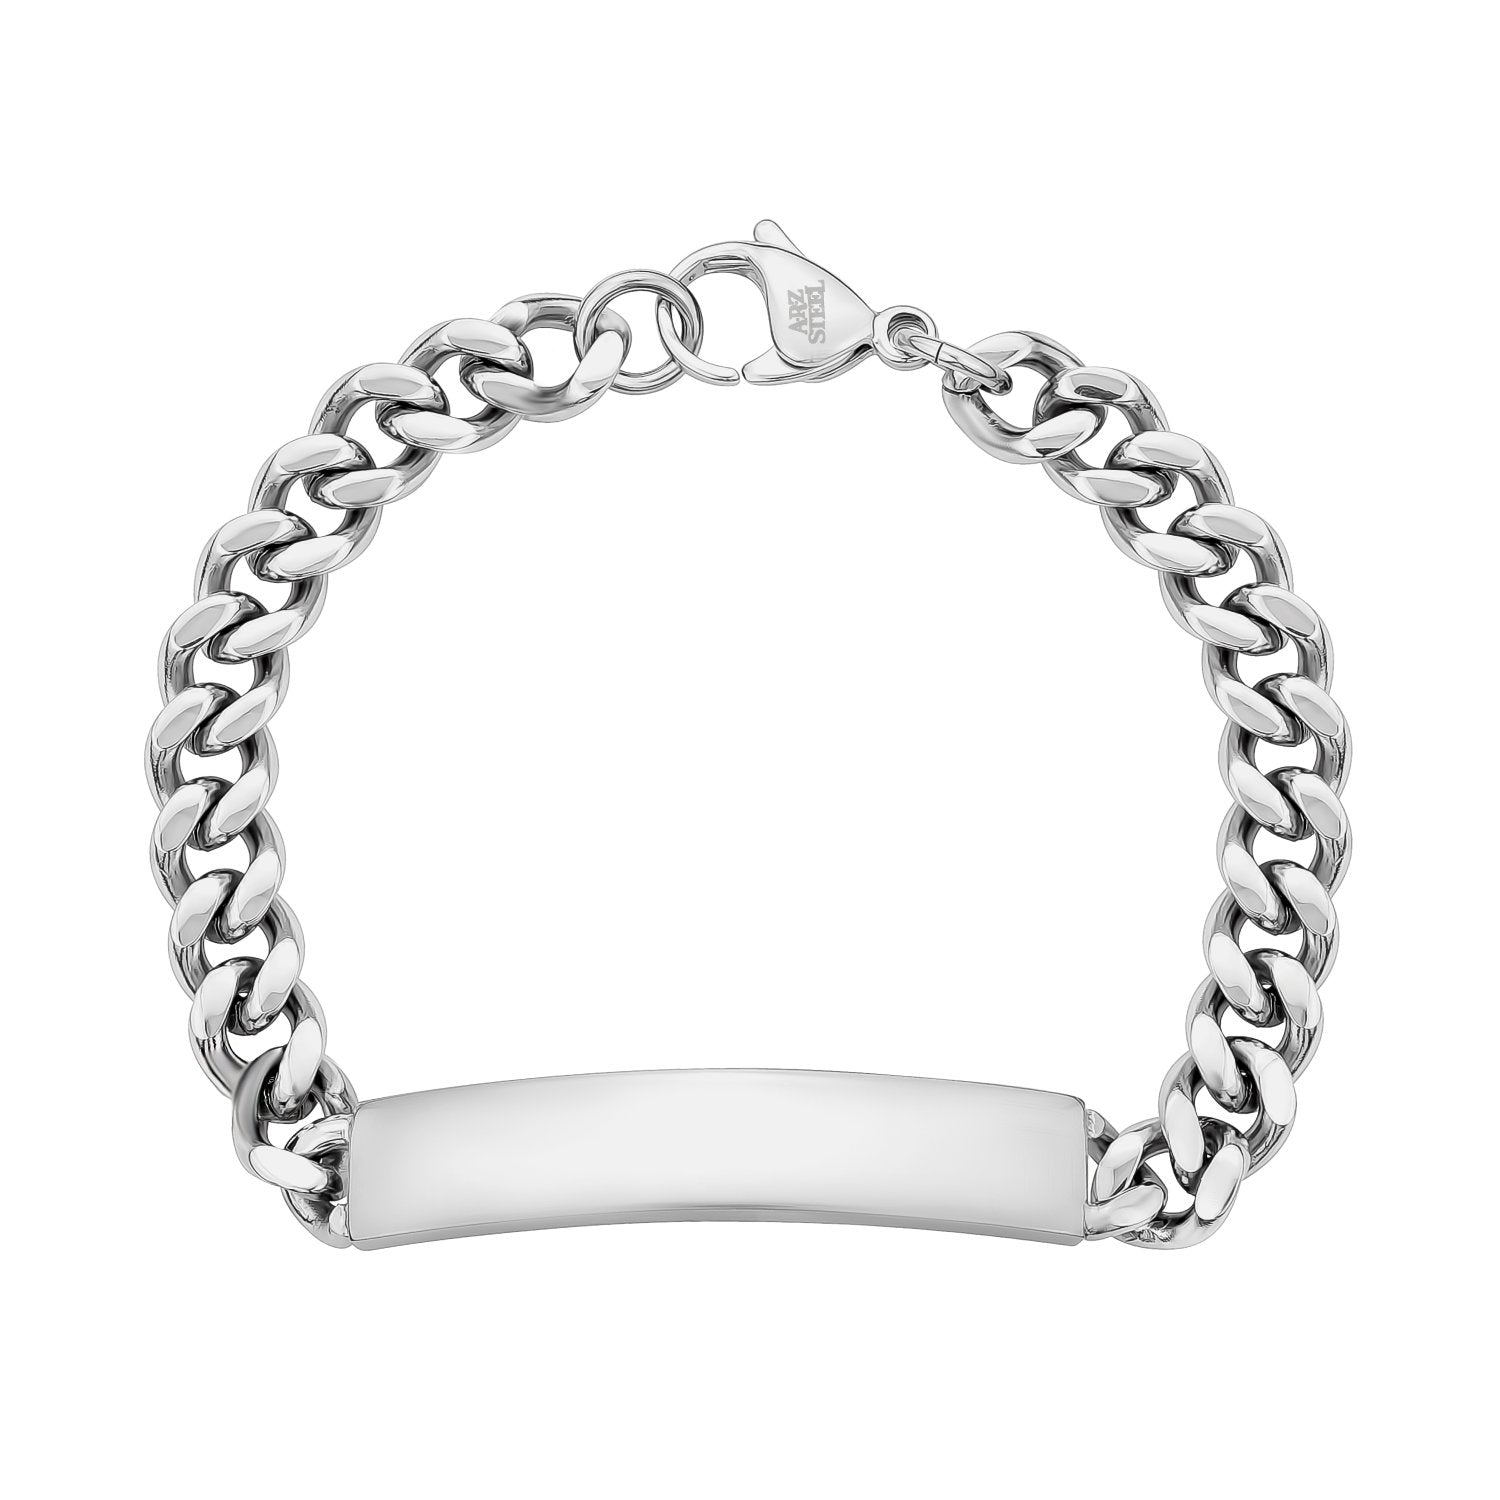 Mens Steel Bracelets - 8mm Stainless Steel Cuban Link ID Bracelet - Engravable